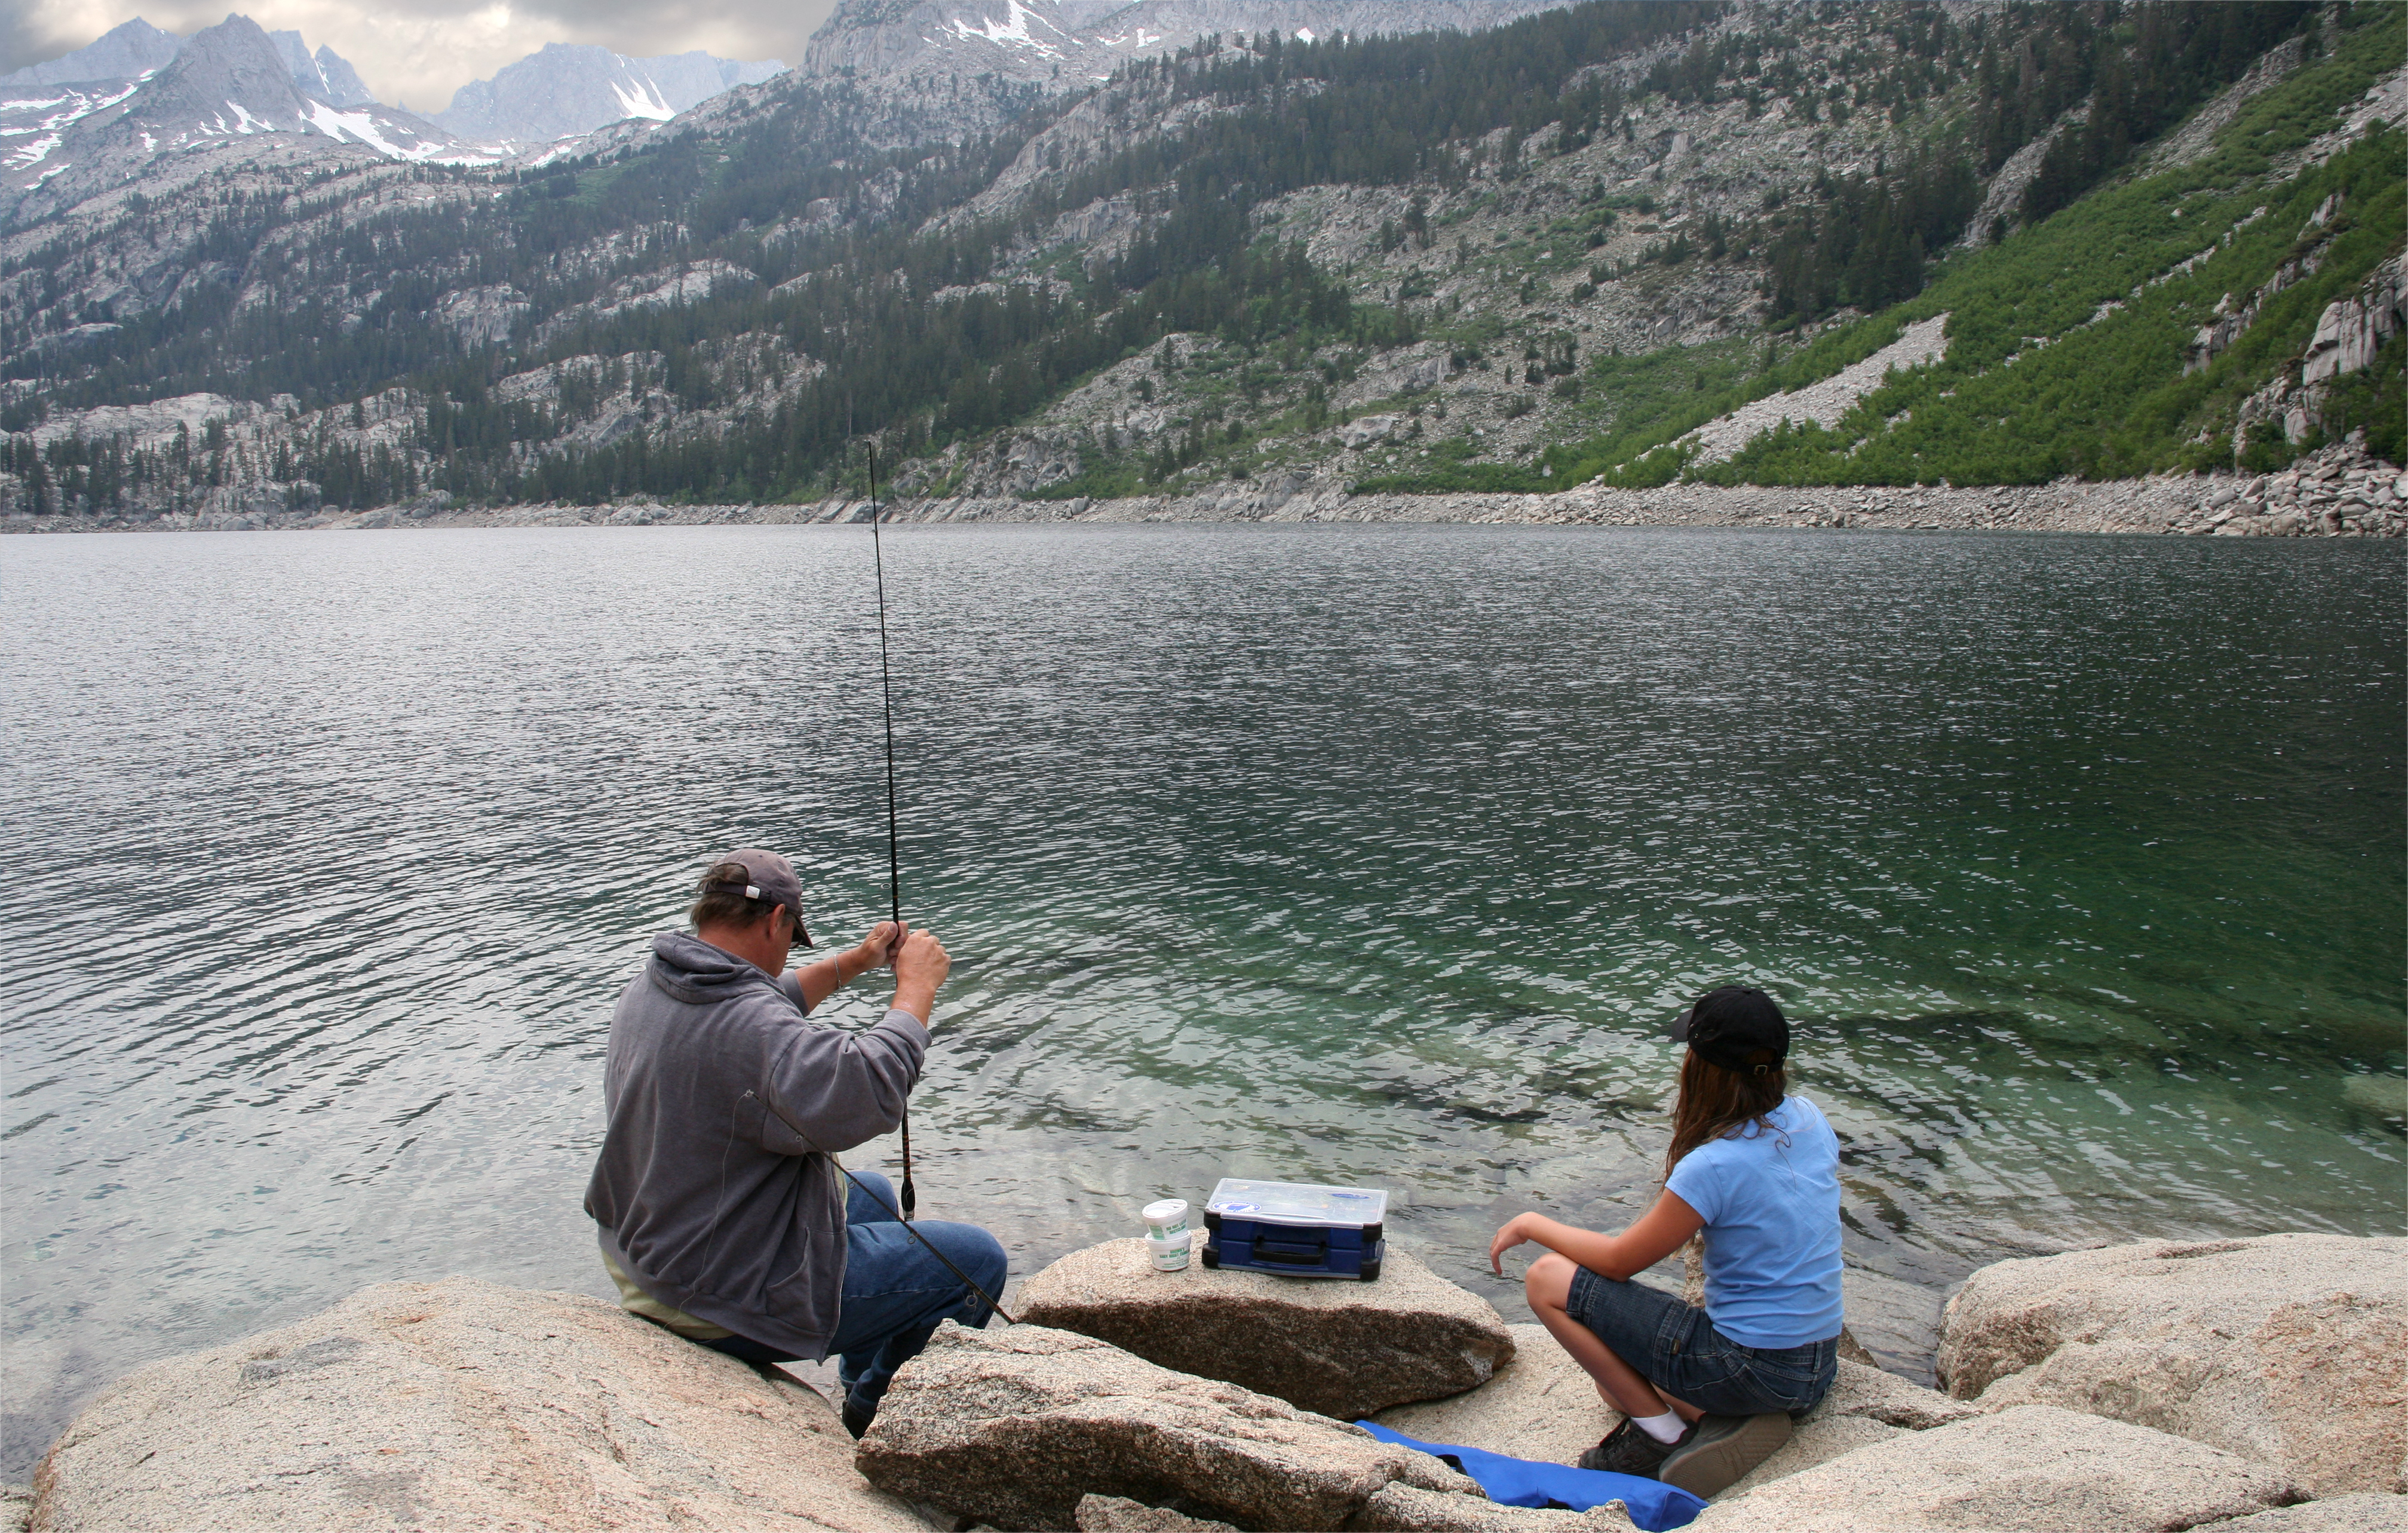 Fishing license for 2017 will be available this month for California fishing regulations